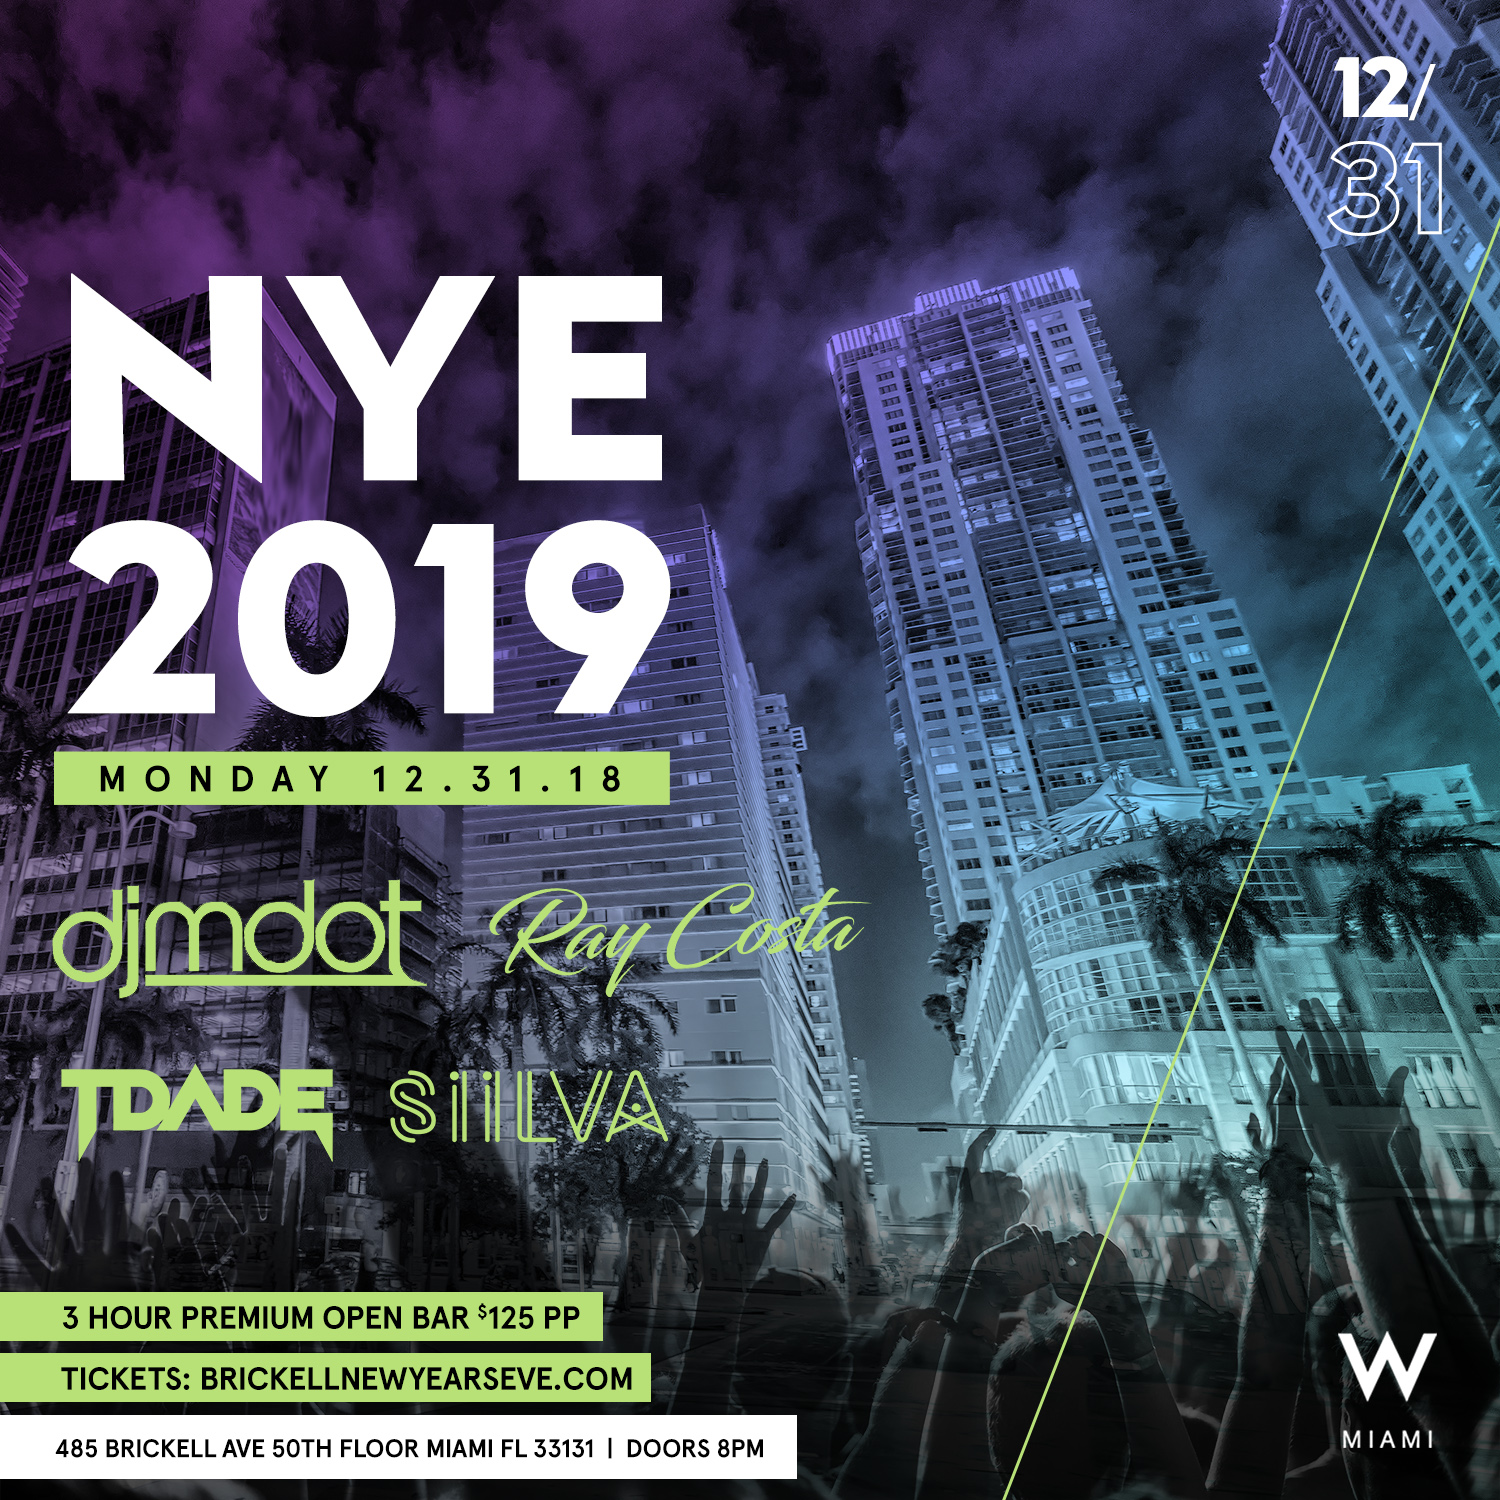 12-31-18 - T.DADE TRICIA DADE NYE NEW YEARS EVE 2019 W MIAMI.JPG